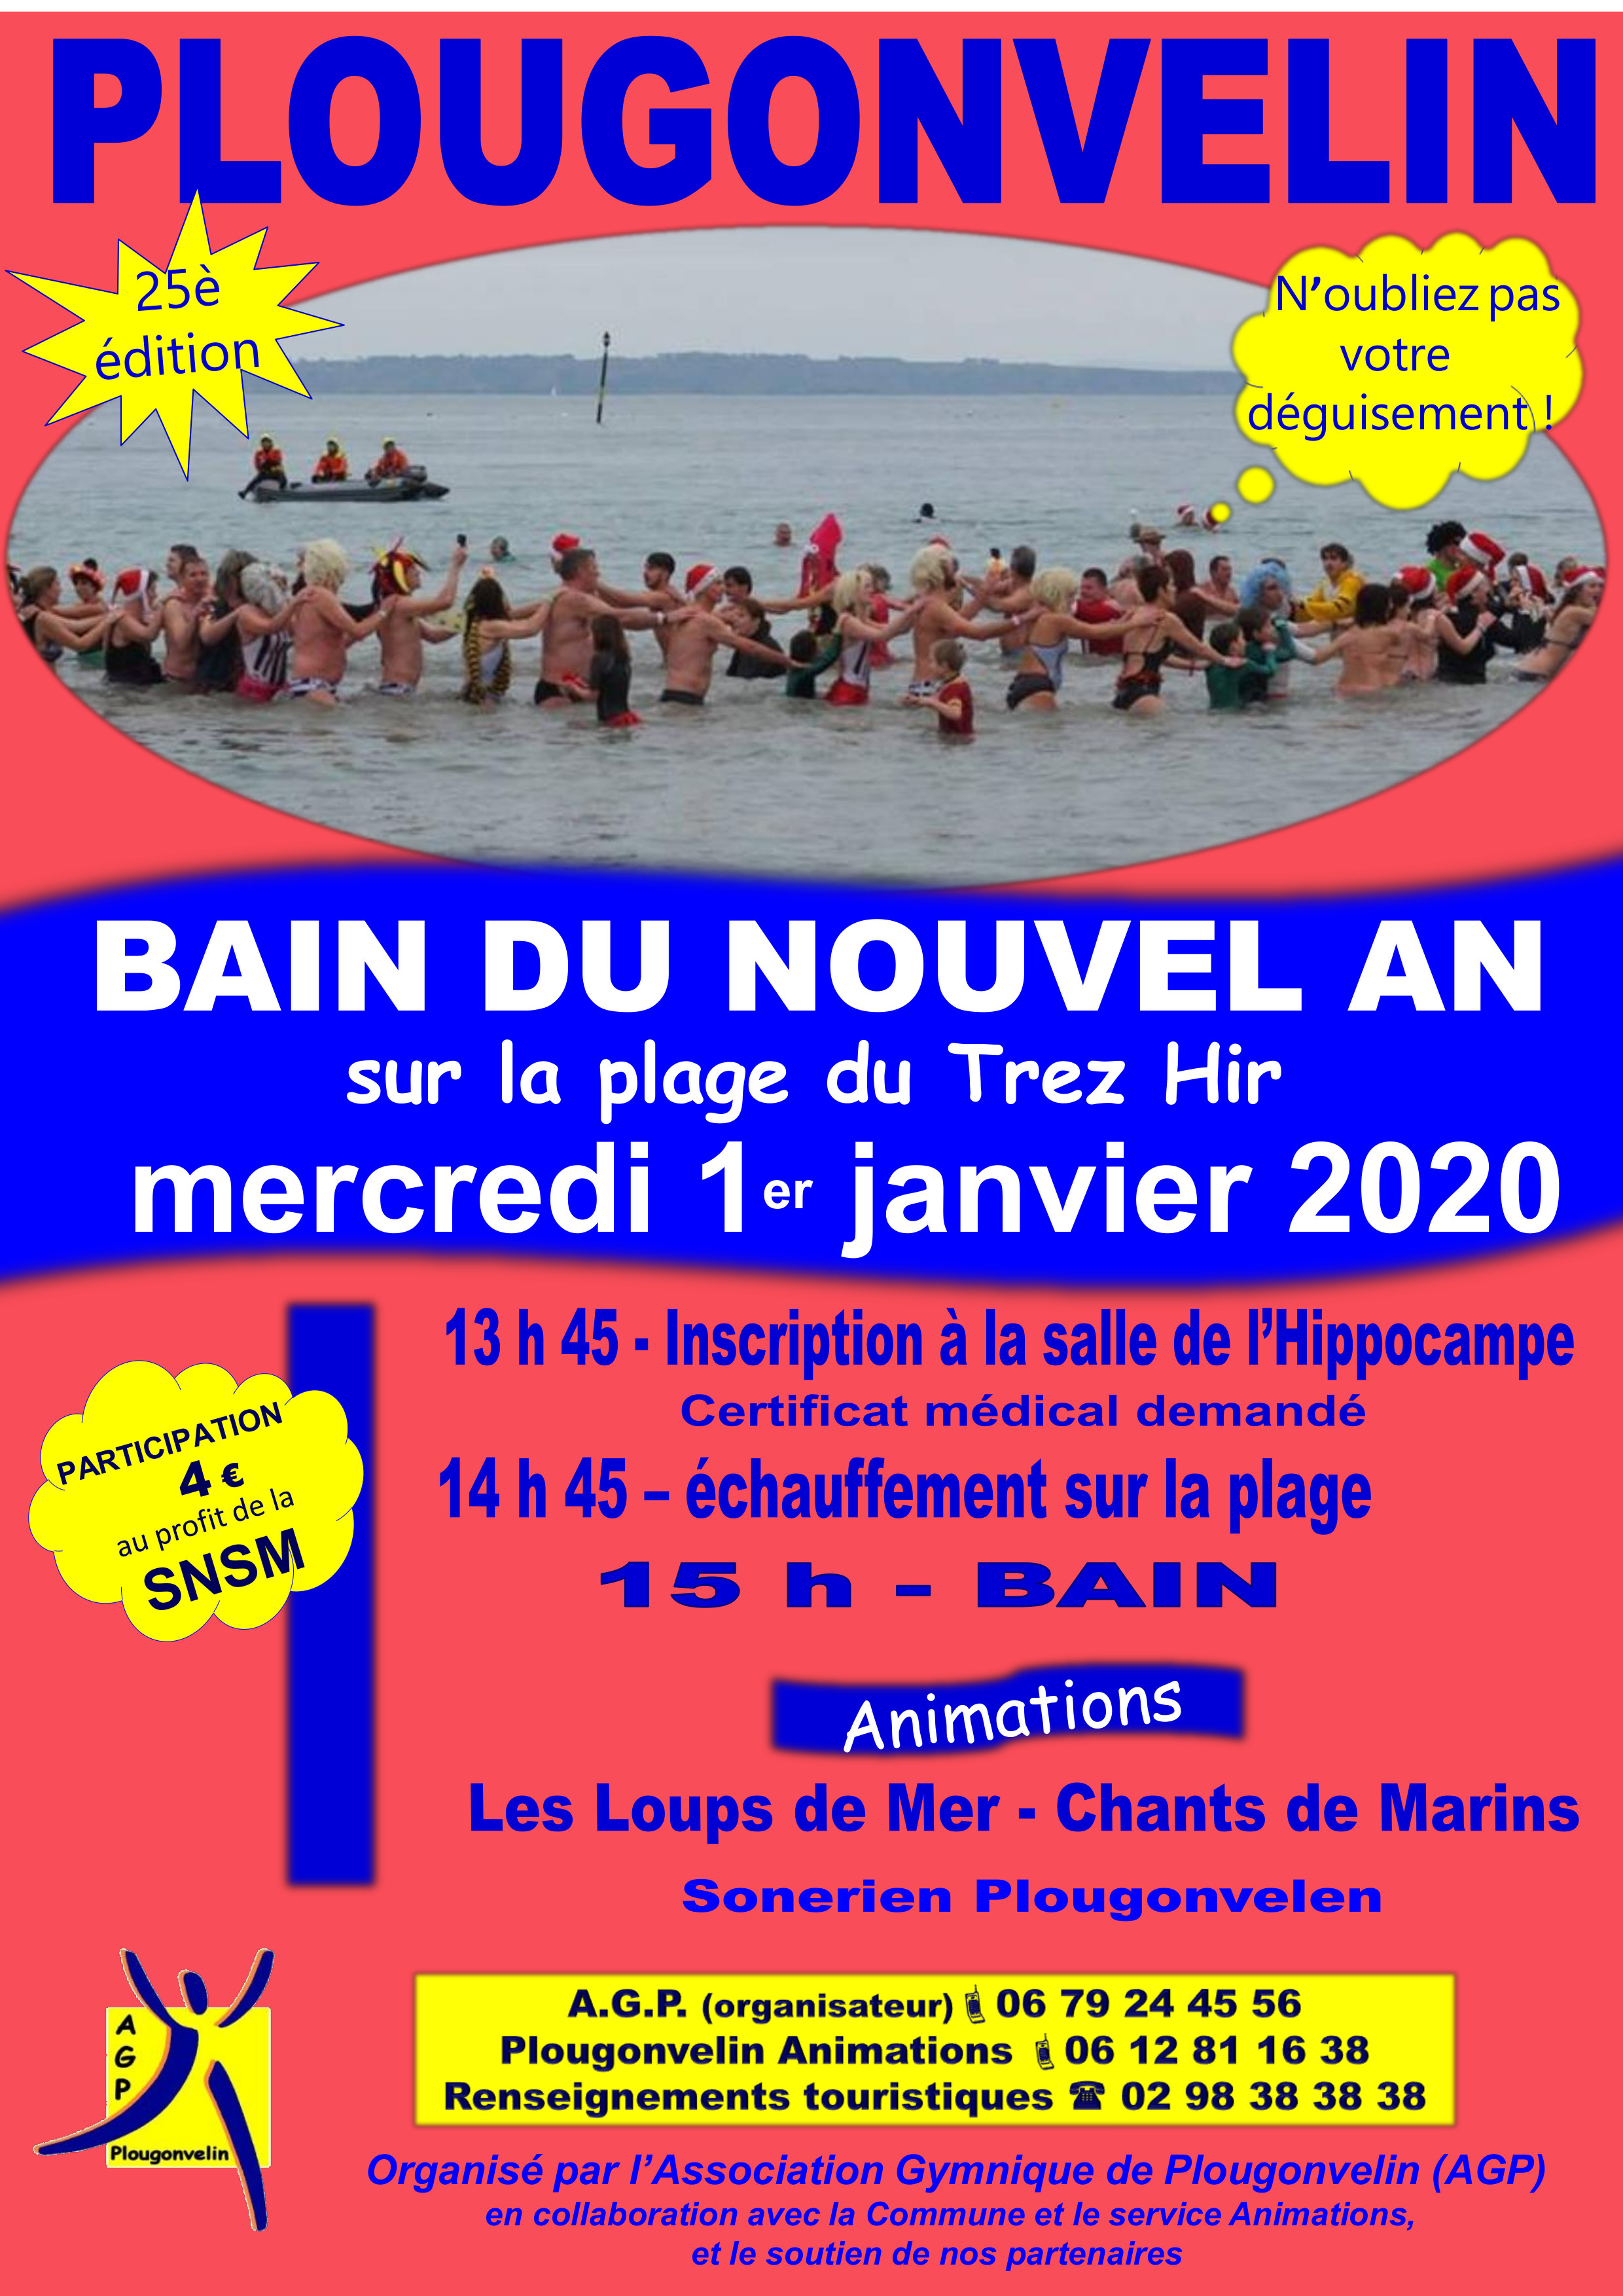 Bain du nouvel an